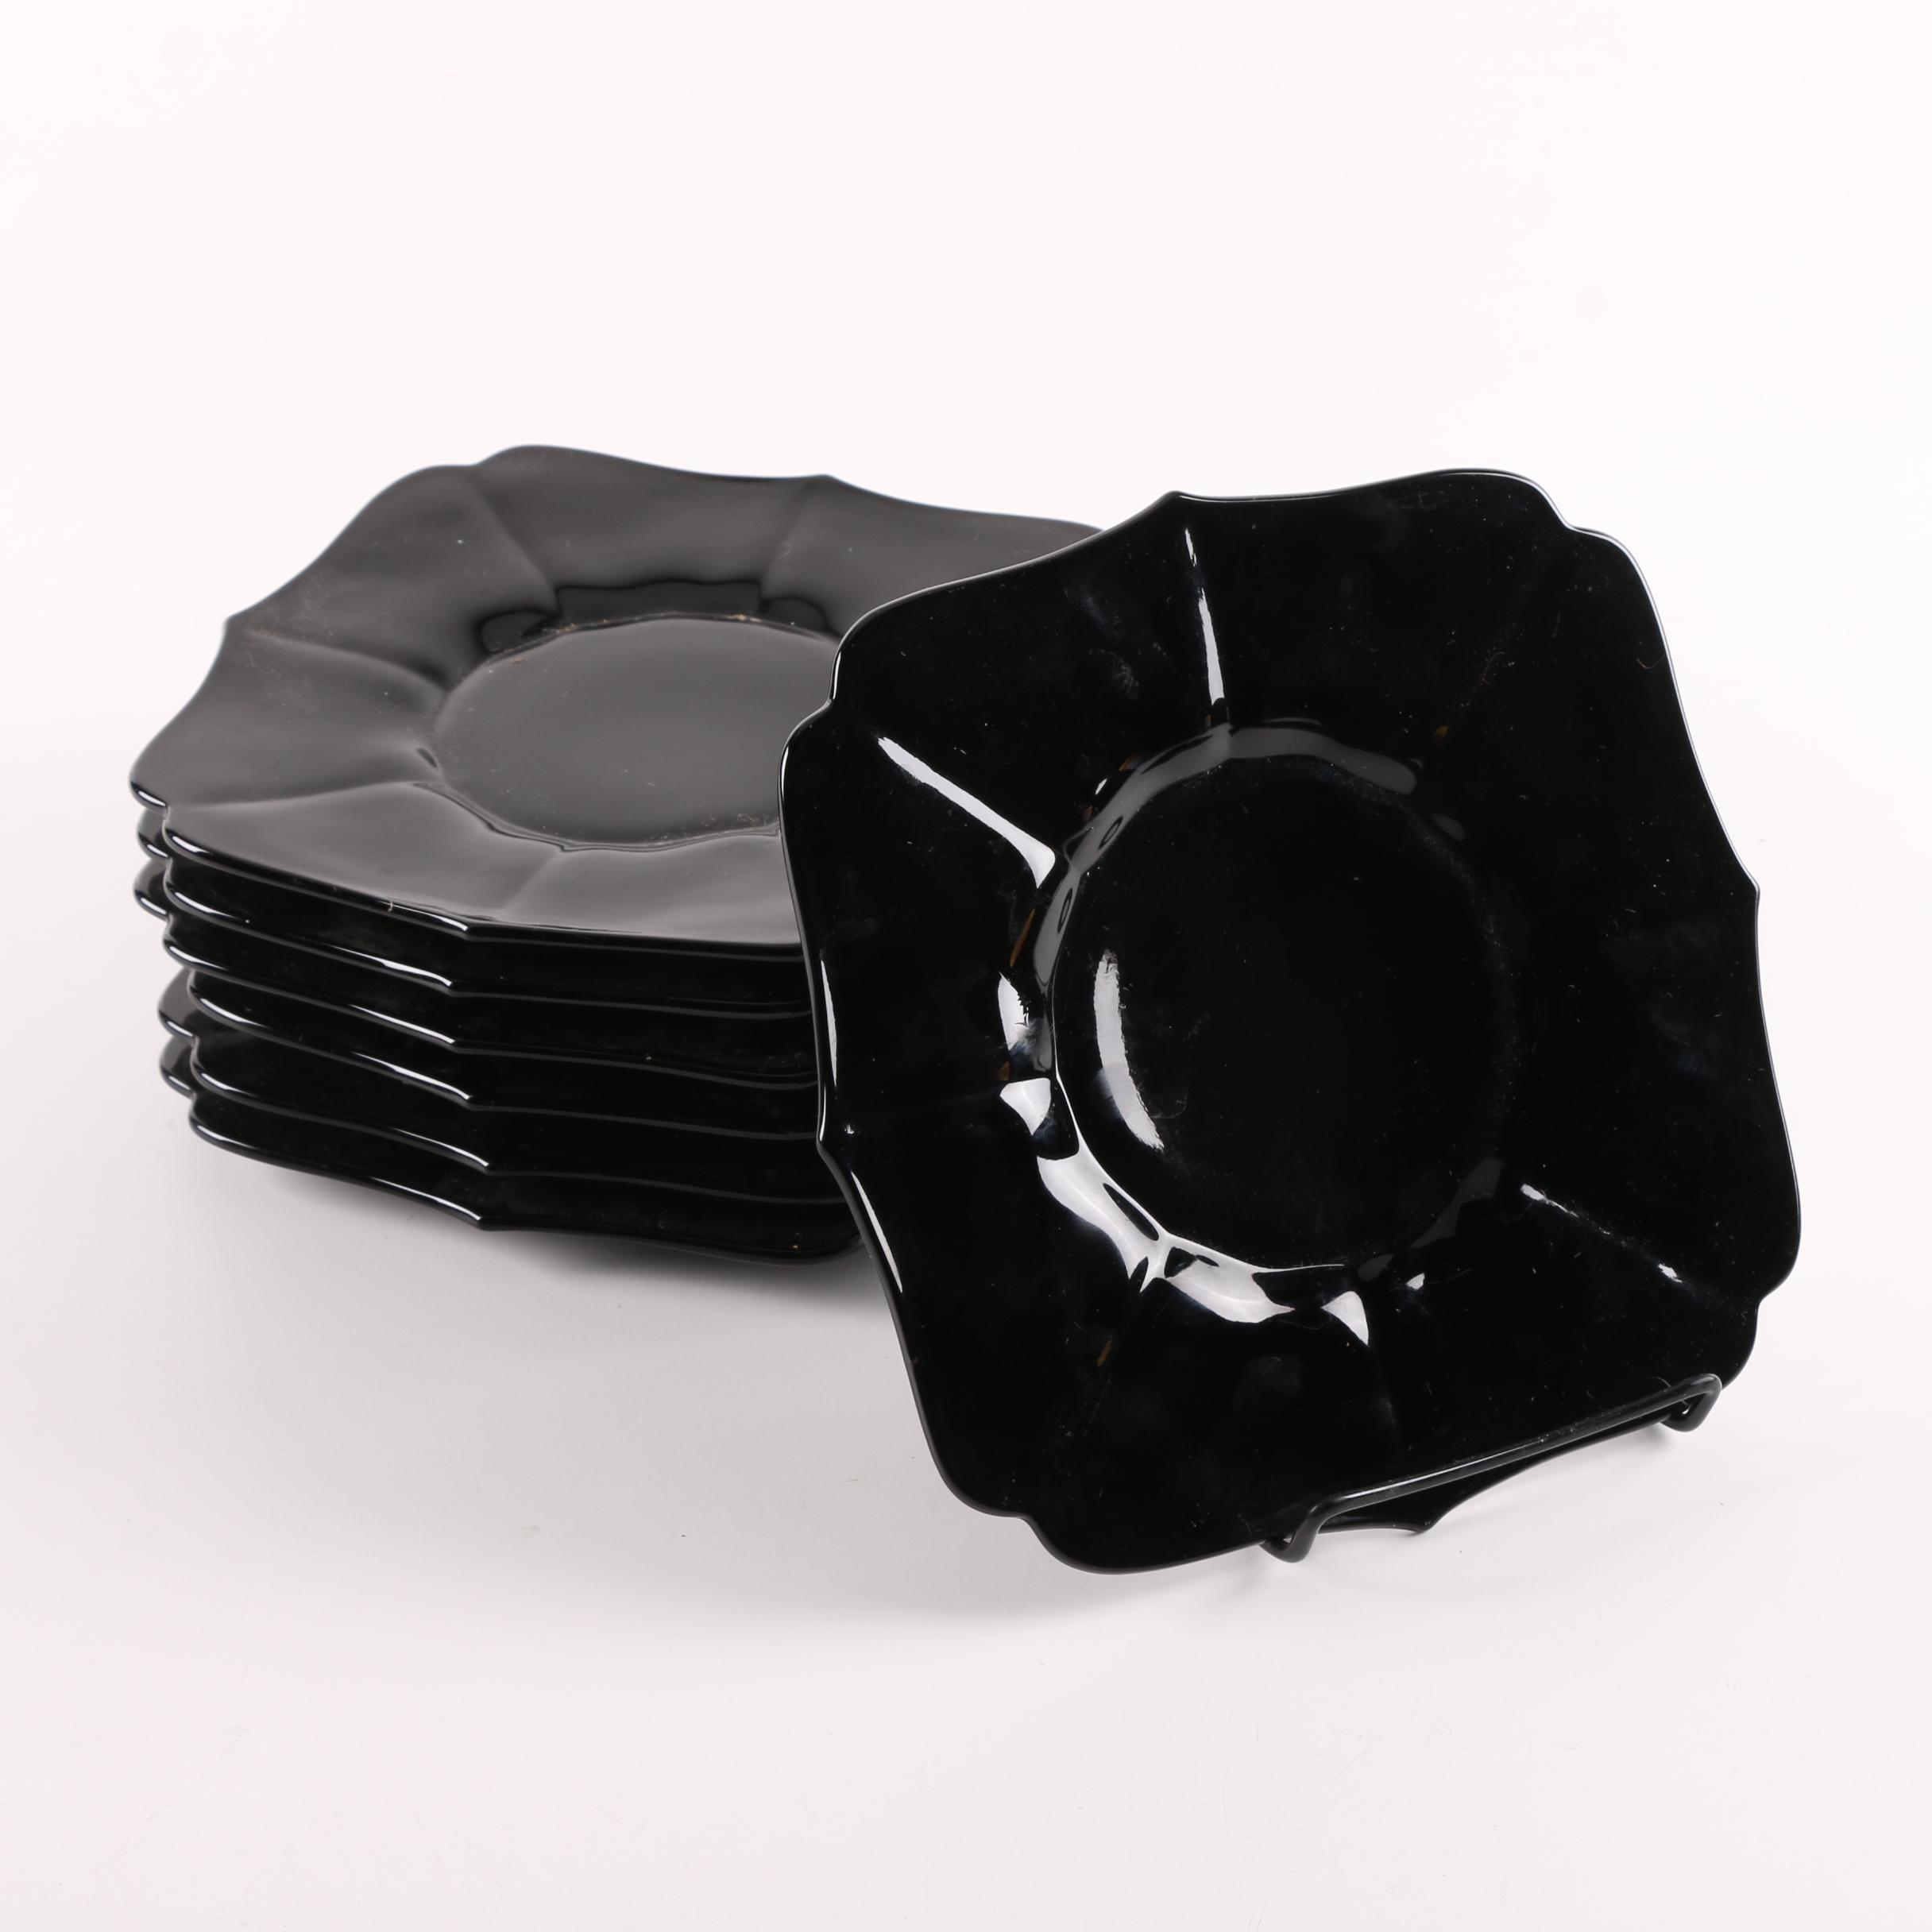 Black Amethyst Glass Plates ... & Black Amethyst Glass Plates : EBTH